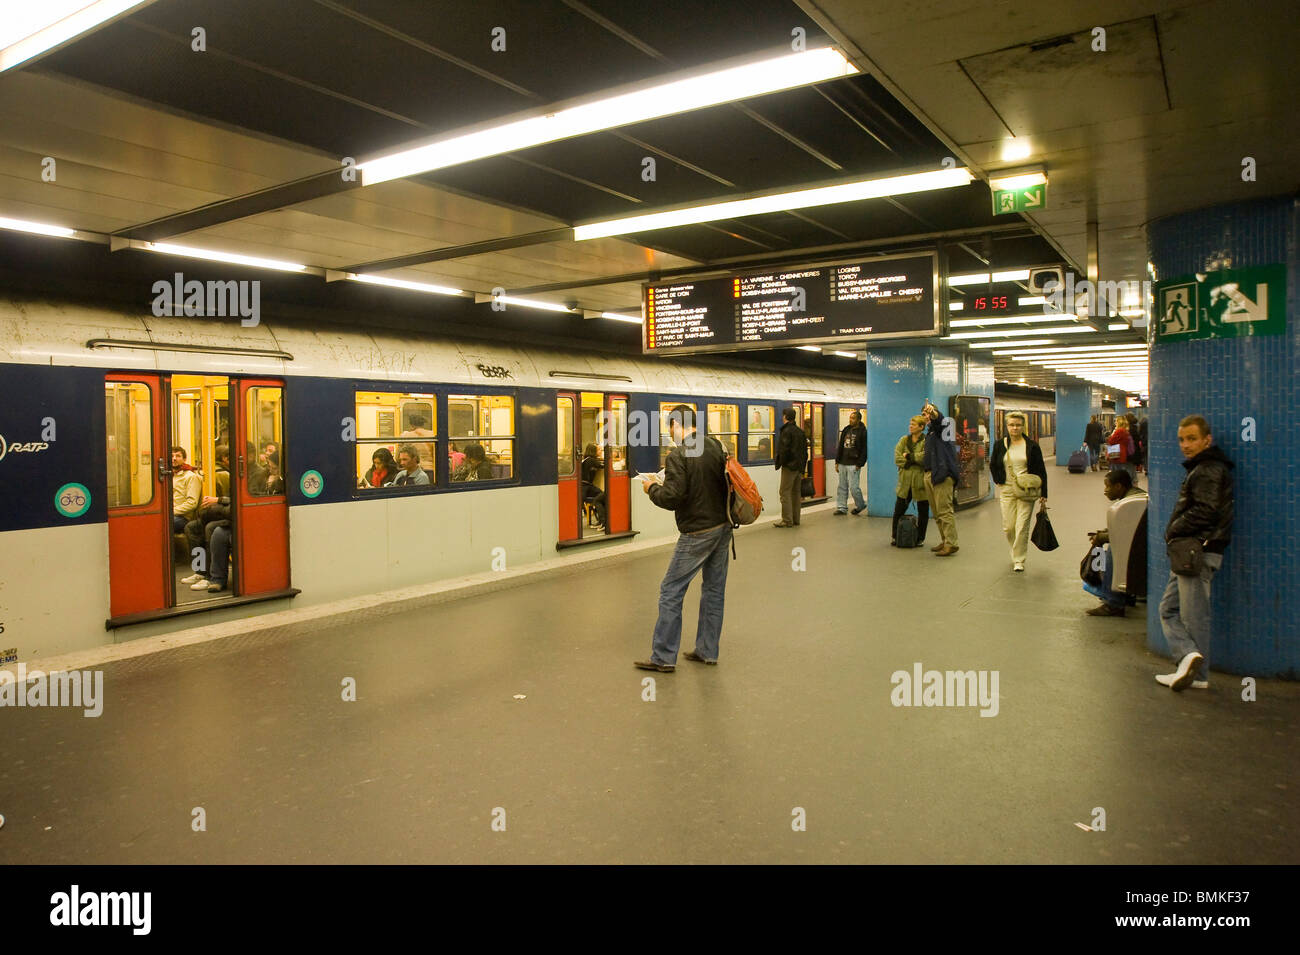 Celio Chatelet Metro Chatelet Paris Stock Photos Metro Chatelet Paris Stock